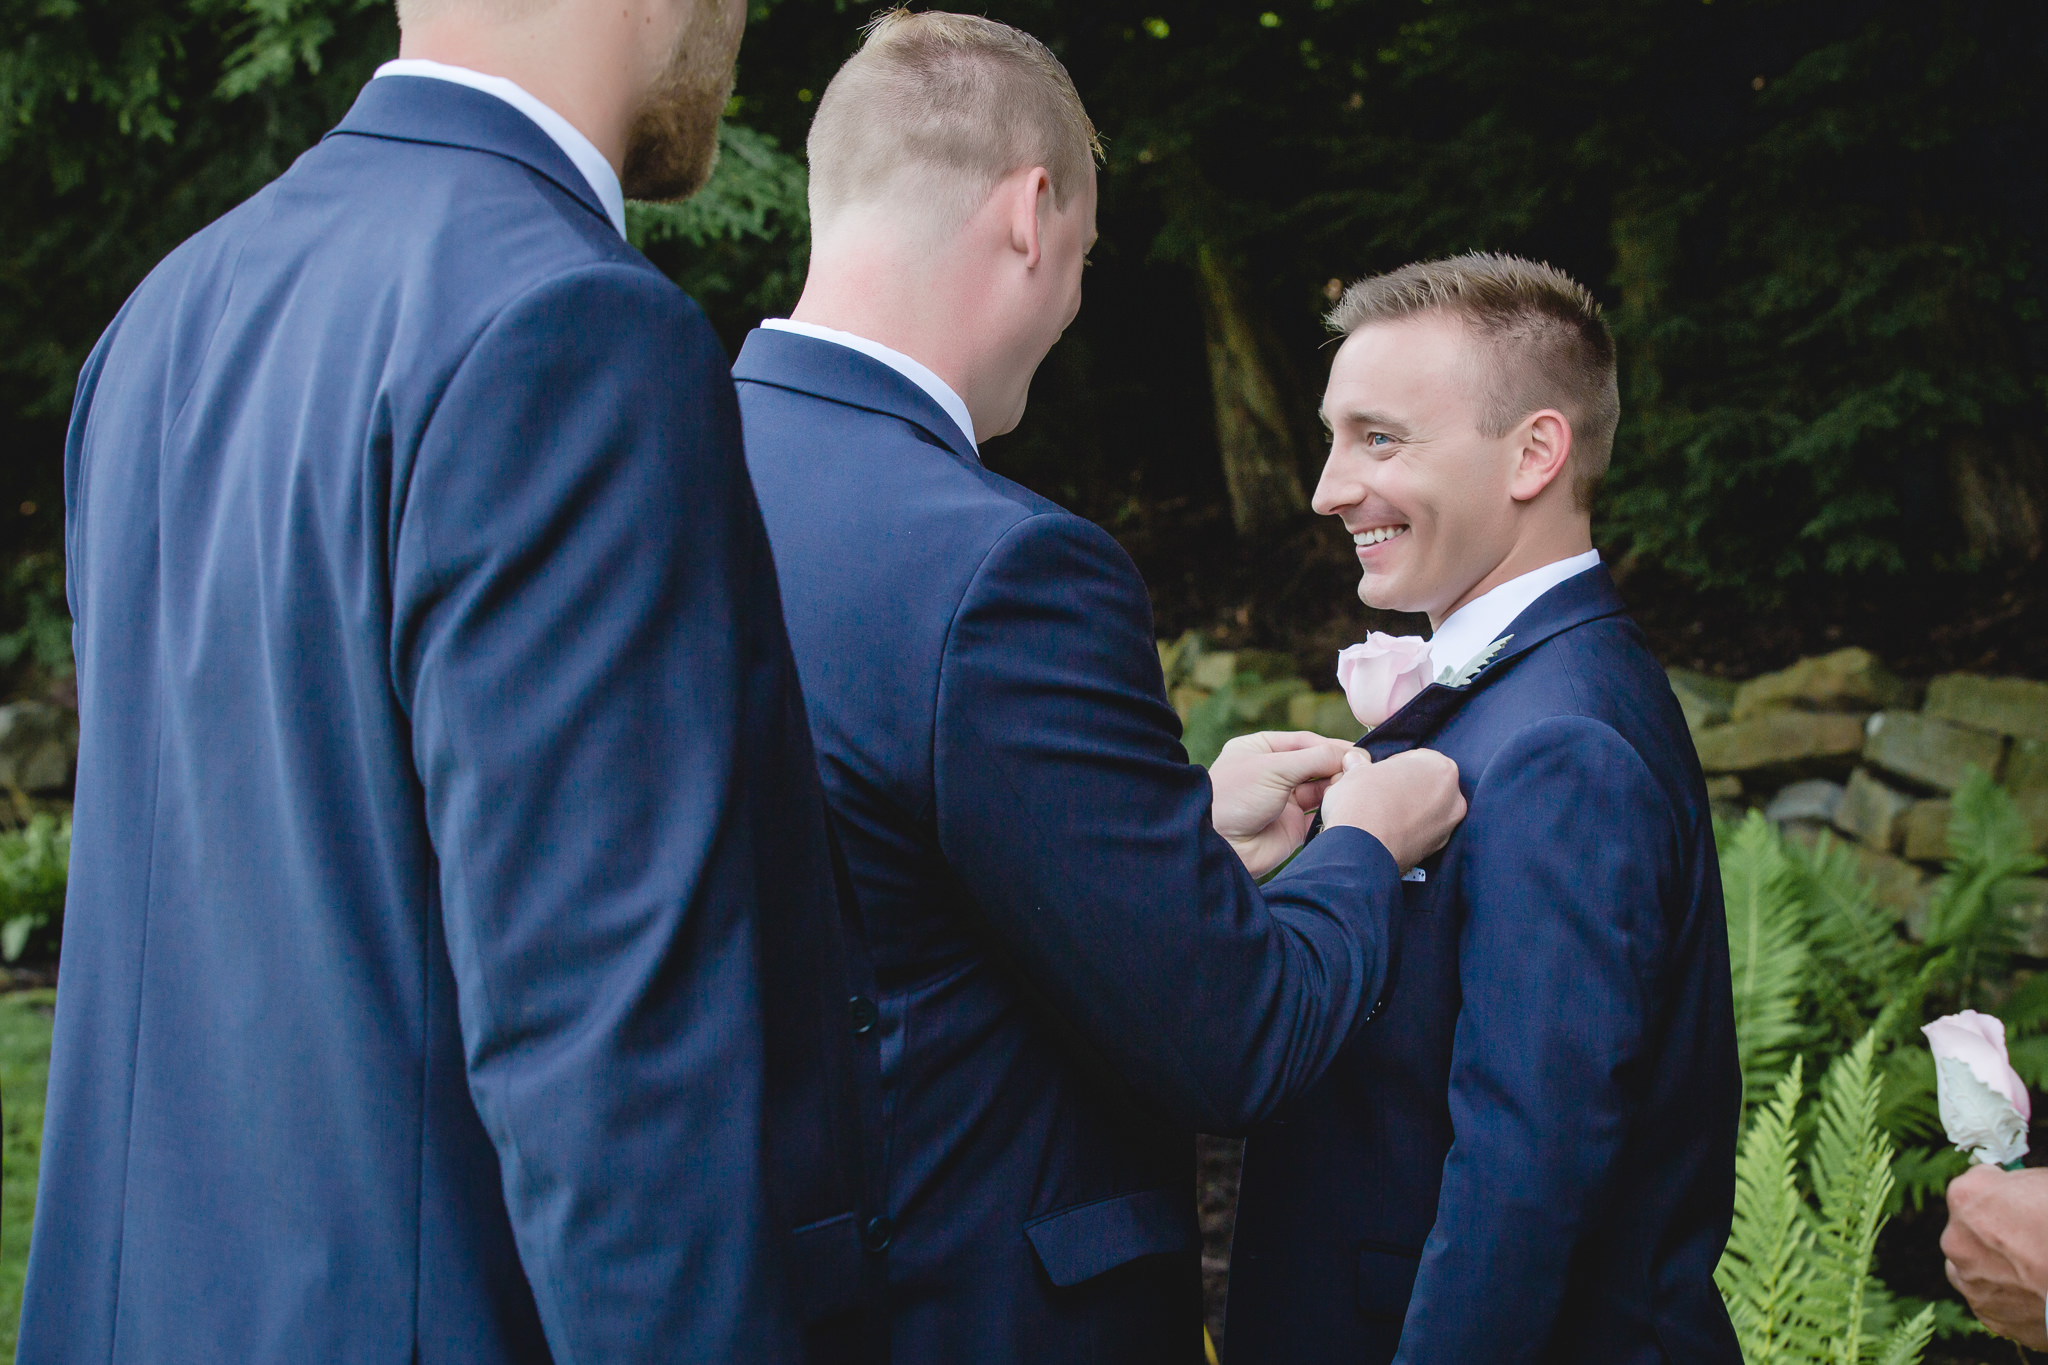 Groomsman pins on the groom's boutonniere at Hidden Valley Resort